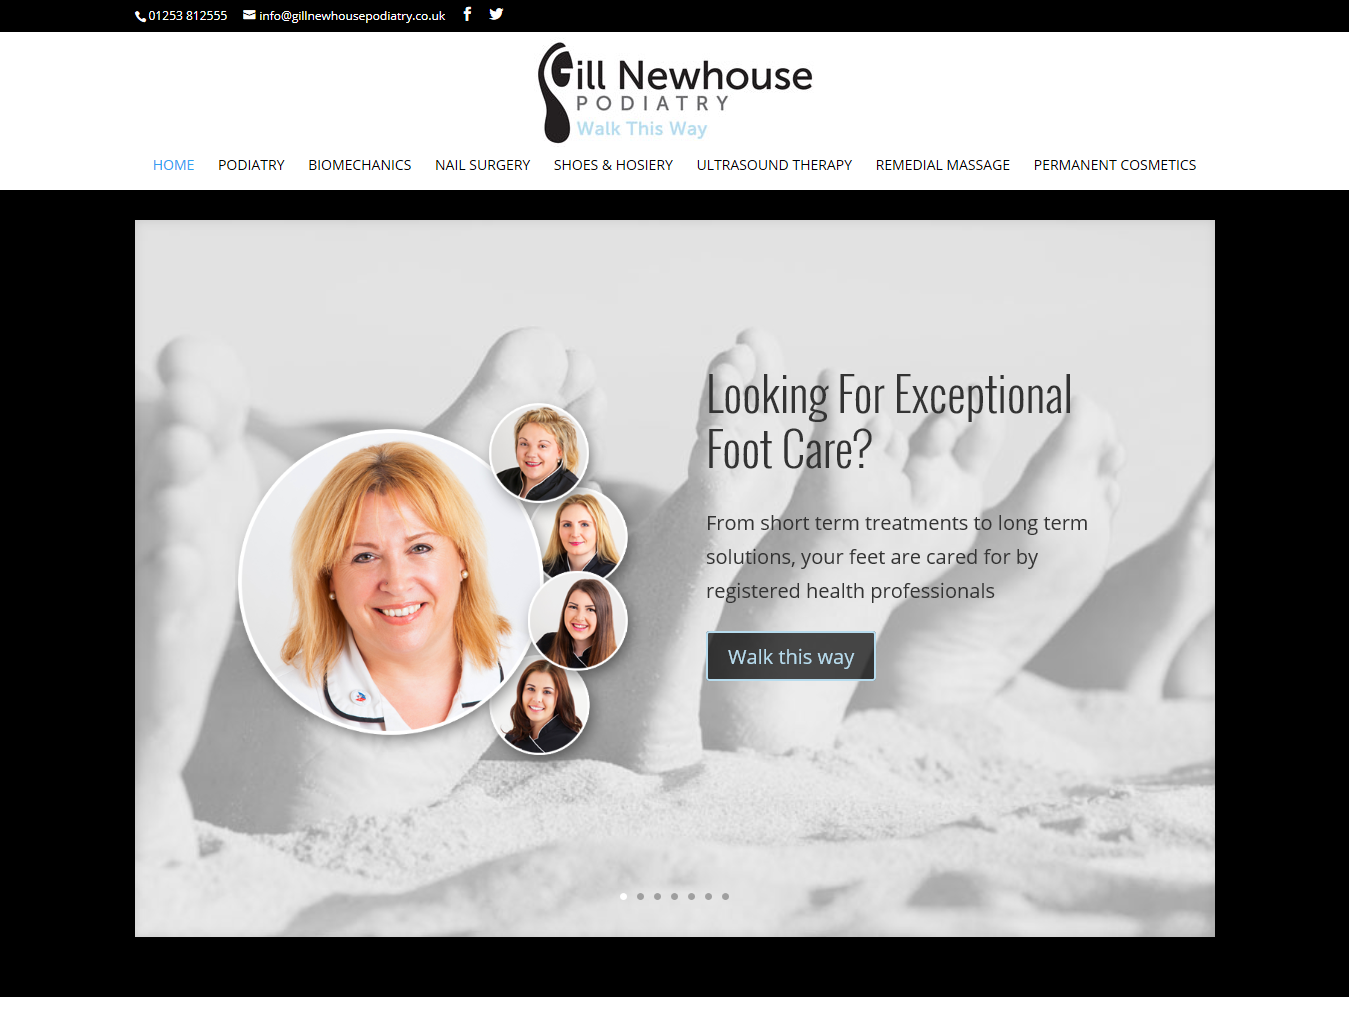 Gill Newhouse Podiatry Services Web Design